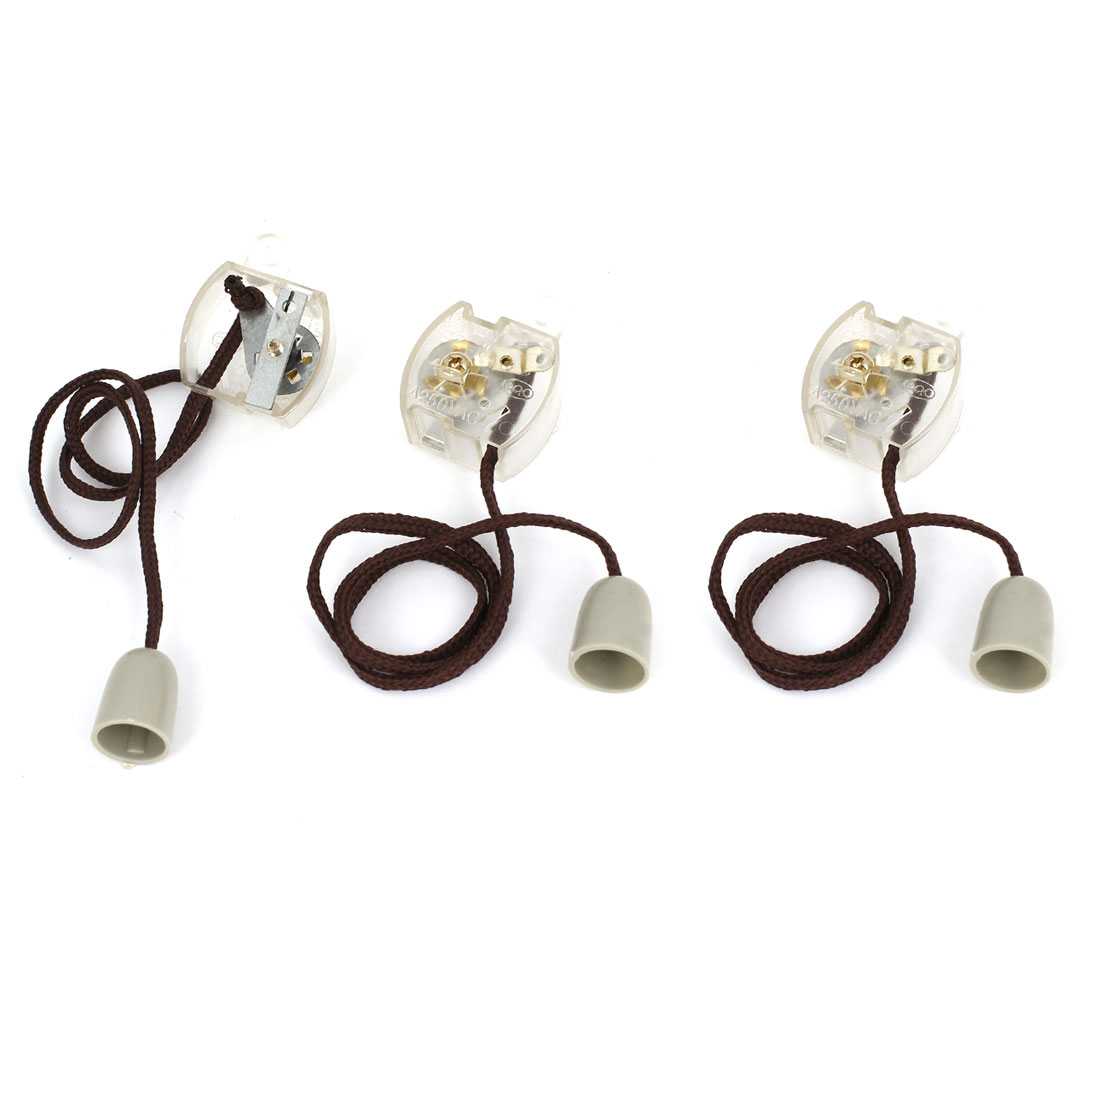 AC 250V 1A Momentary Pulling Cord Plastic Shell Switch Clear 3pcs for Ceiling Fan